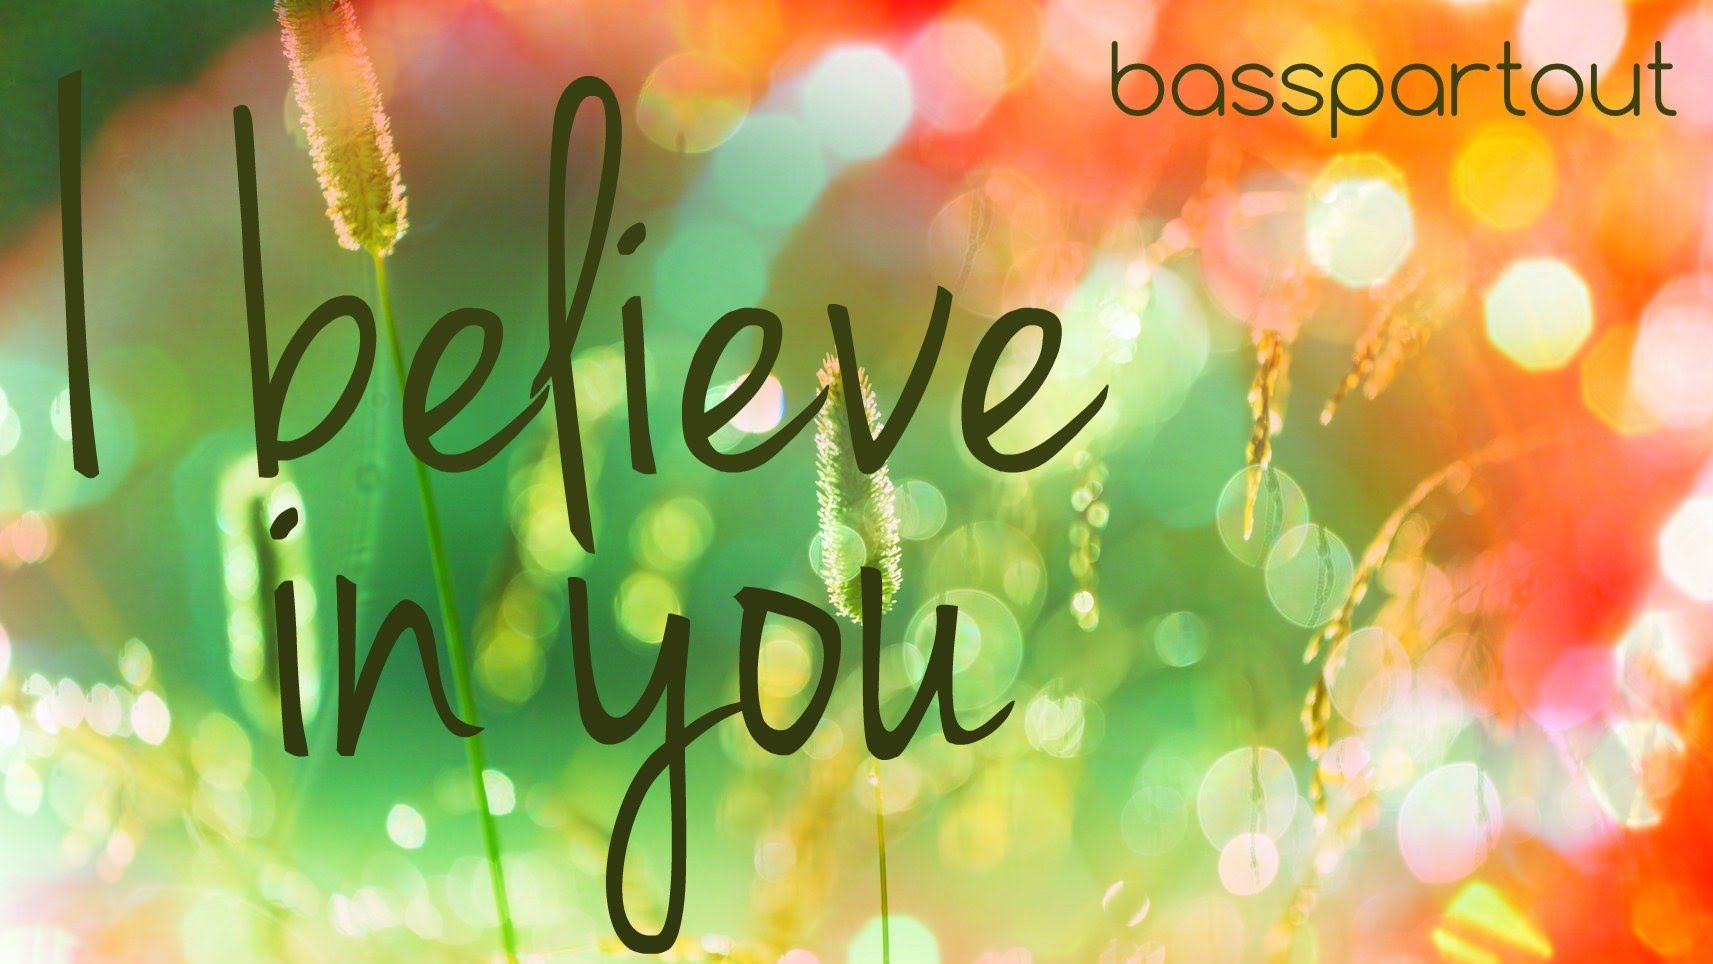 I Believe In You Positive Acoustic Instrumental Background Music For V Free Background Music Believe In You Music